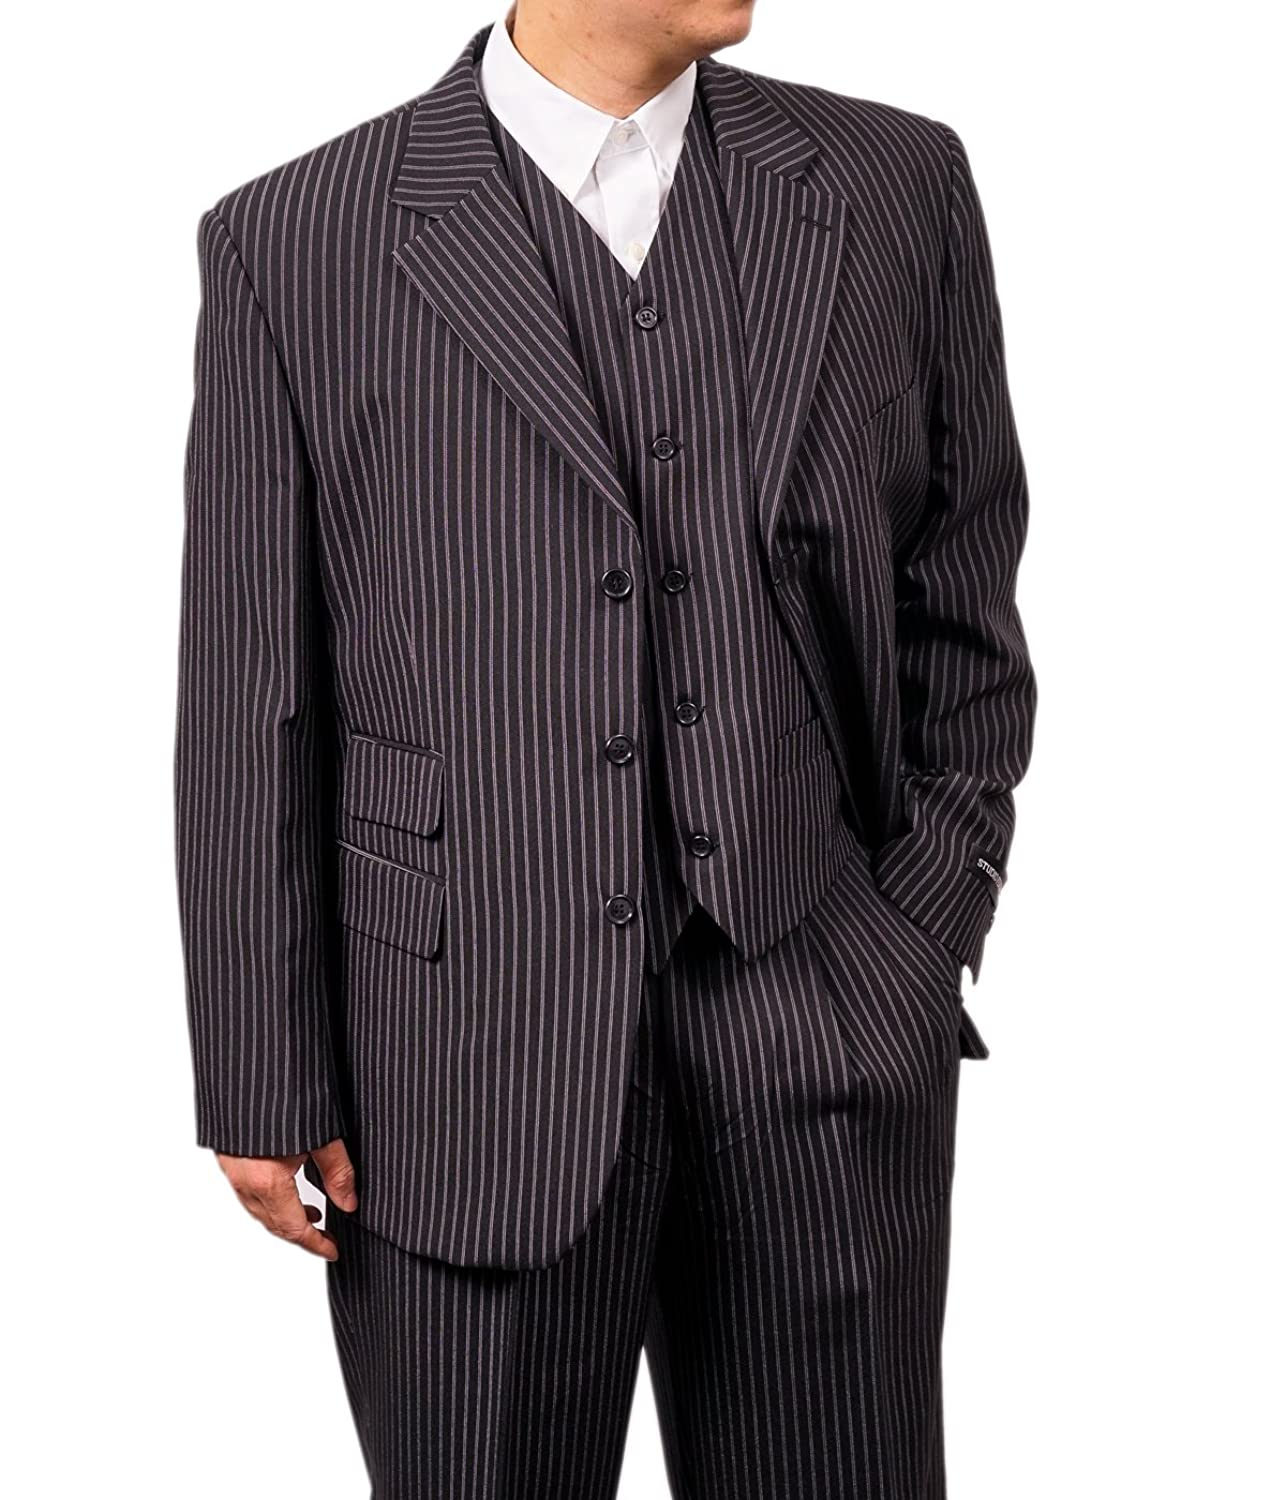 1940s Men's Suit History and Styling Tips New Mens 3 Piece Black Gangster Pinstripe Dress Suit with Matching Vest $119.99 AT vintagedancer.com